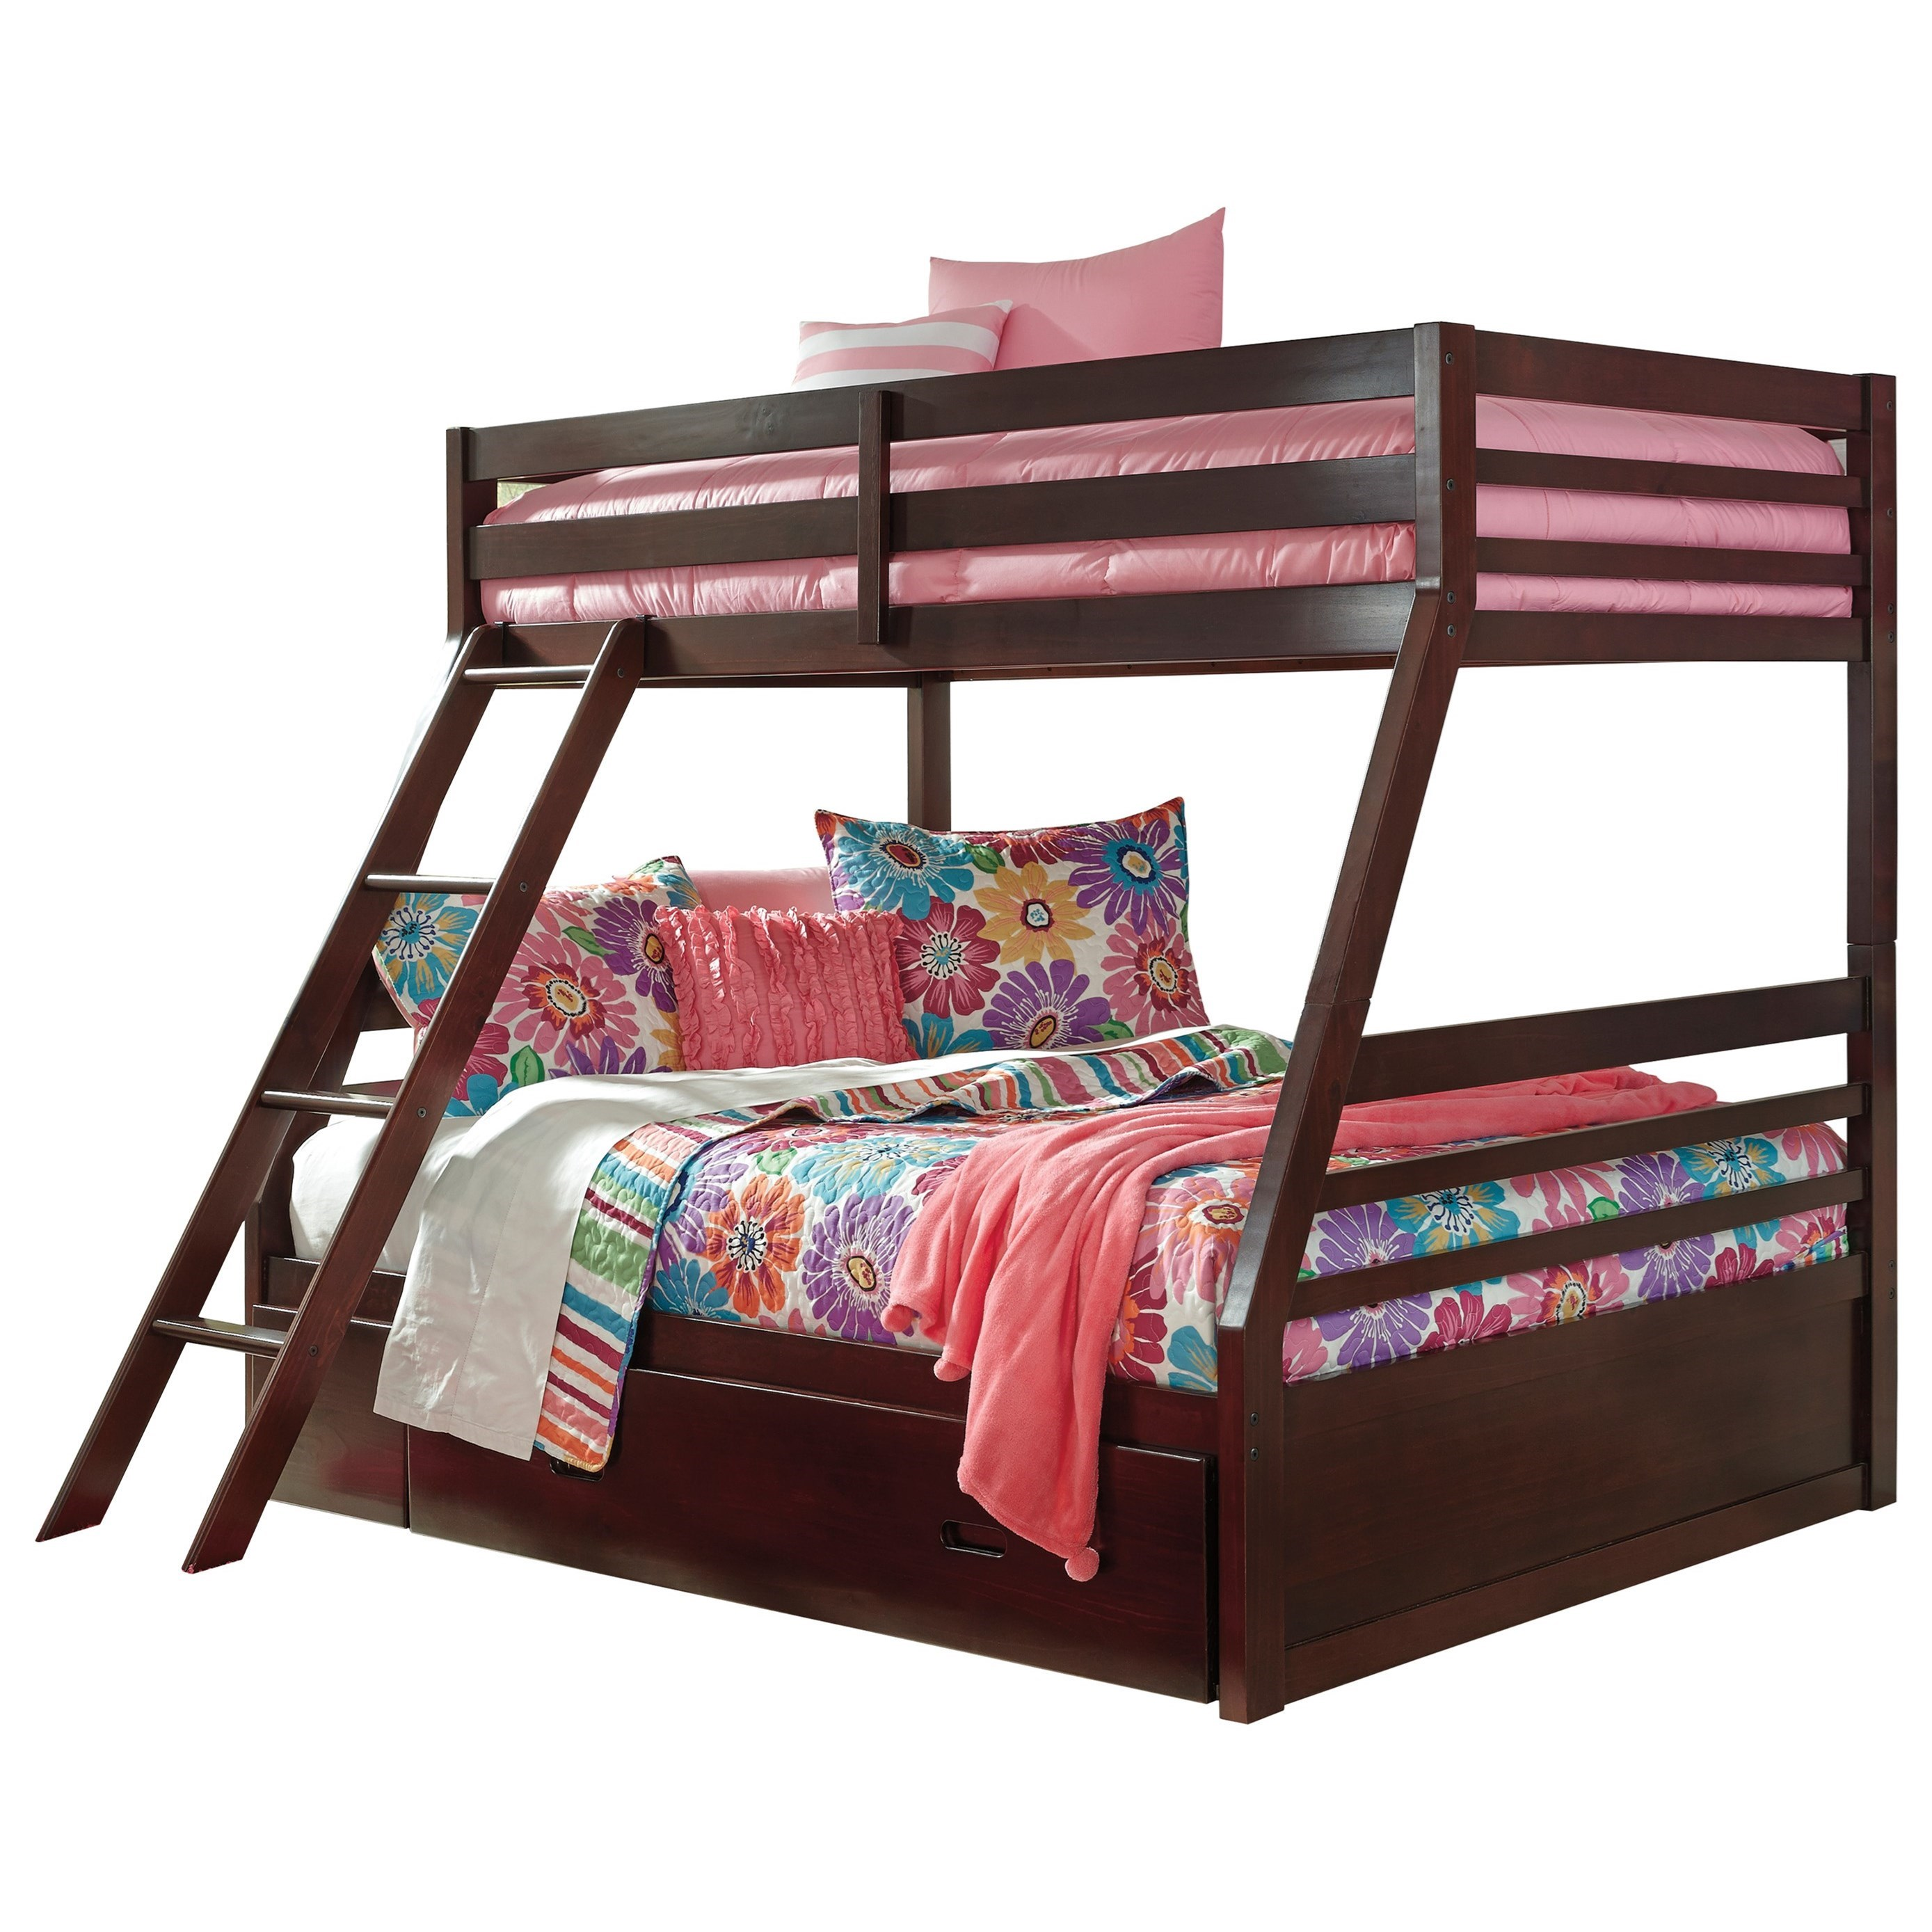 Halanton Twin/Full Bunk Bed w/ Under Bed Storage by Ashley (Signature Design) at Johnny Janosik